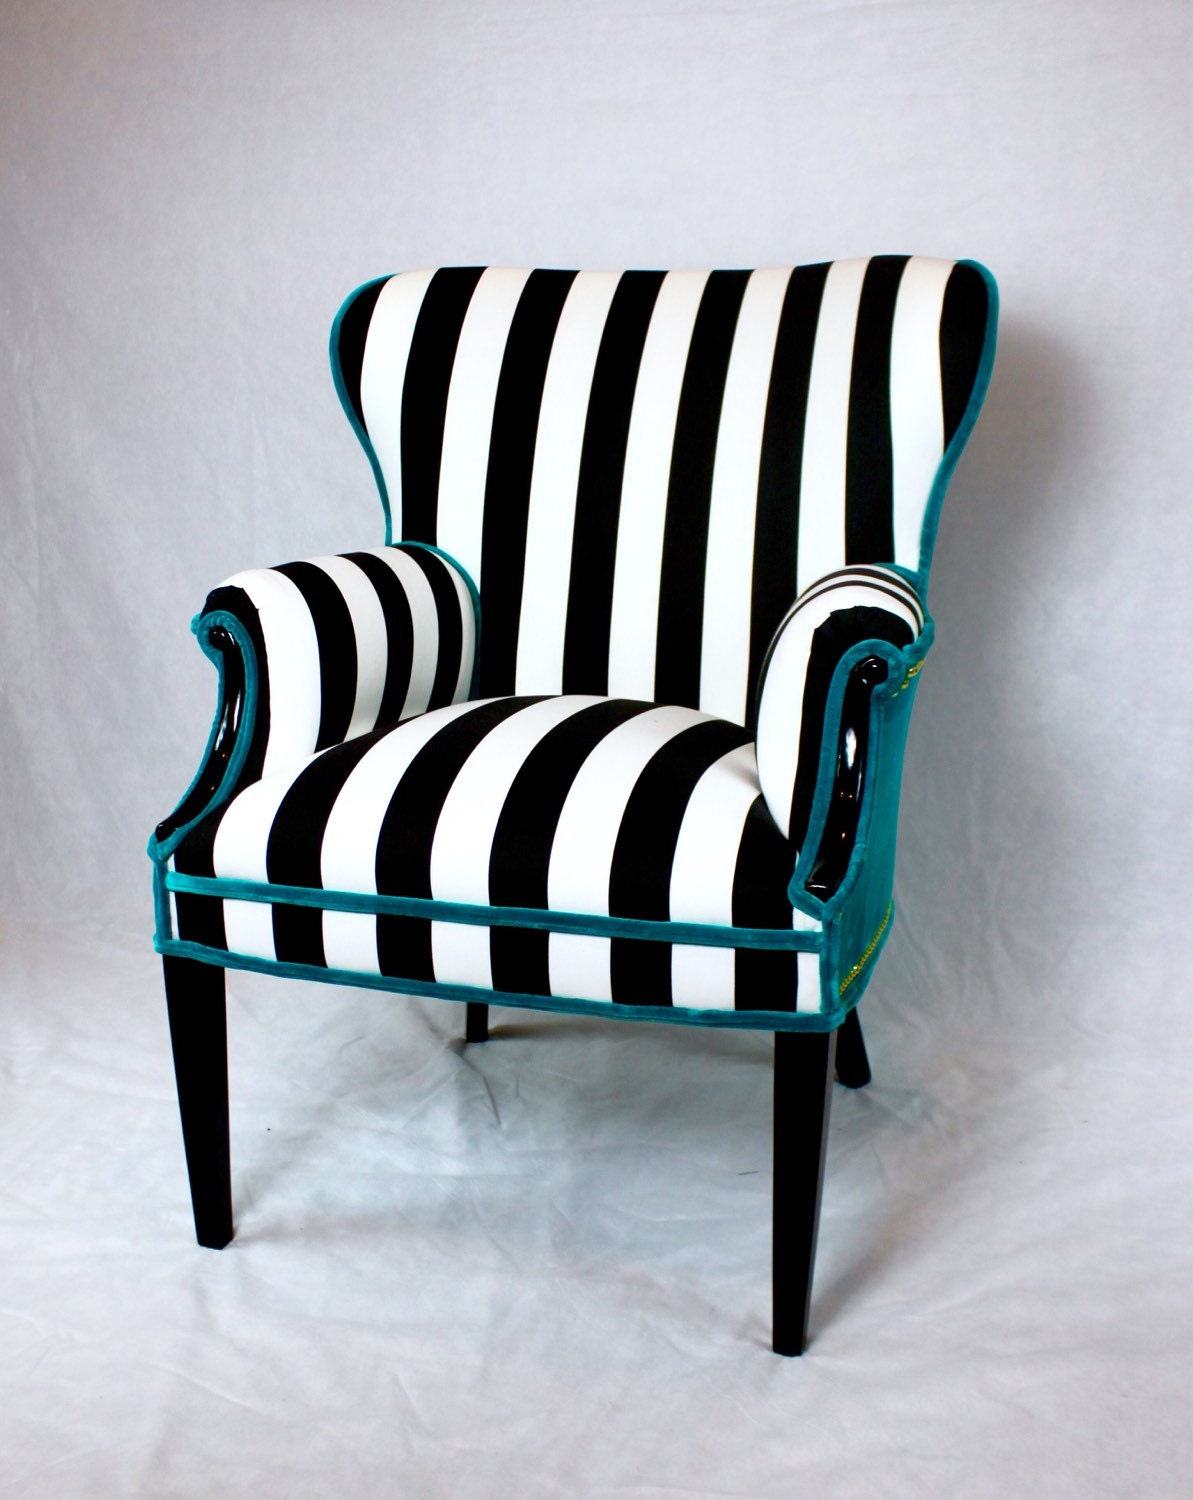 sold black and white striped vintage round wing back chair. Black Bedroom Furniture Sets. Home Design Ideas